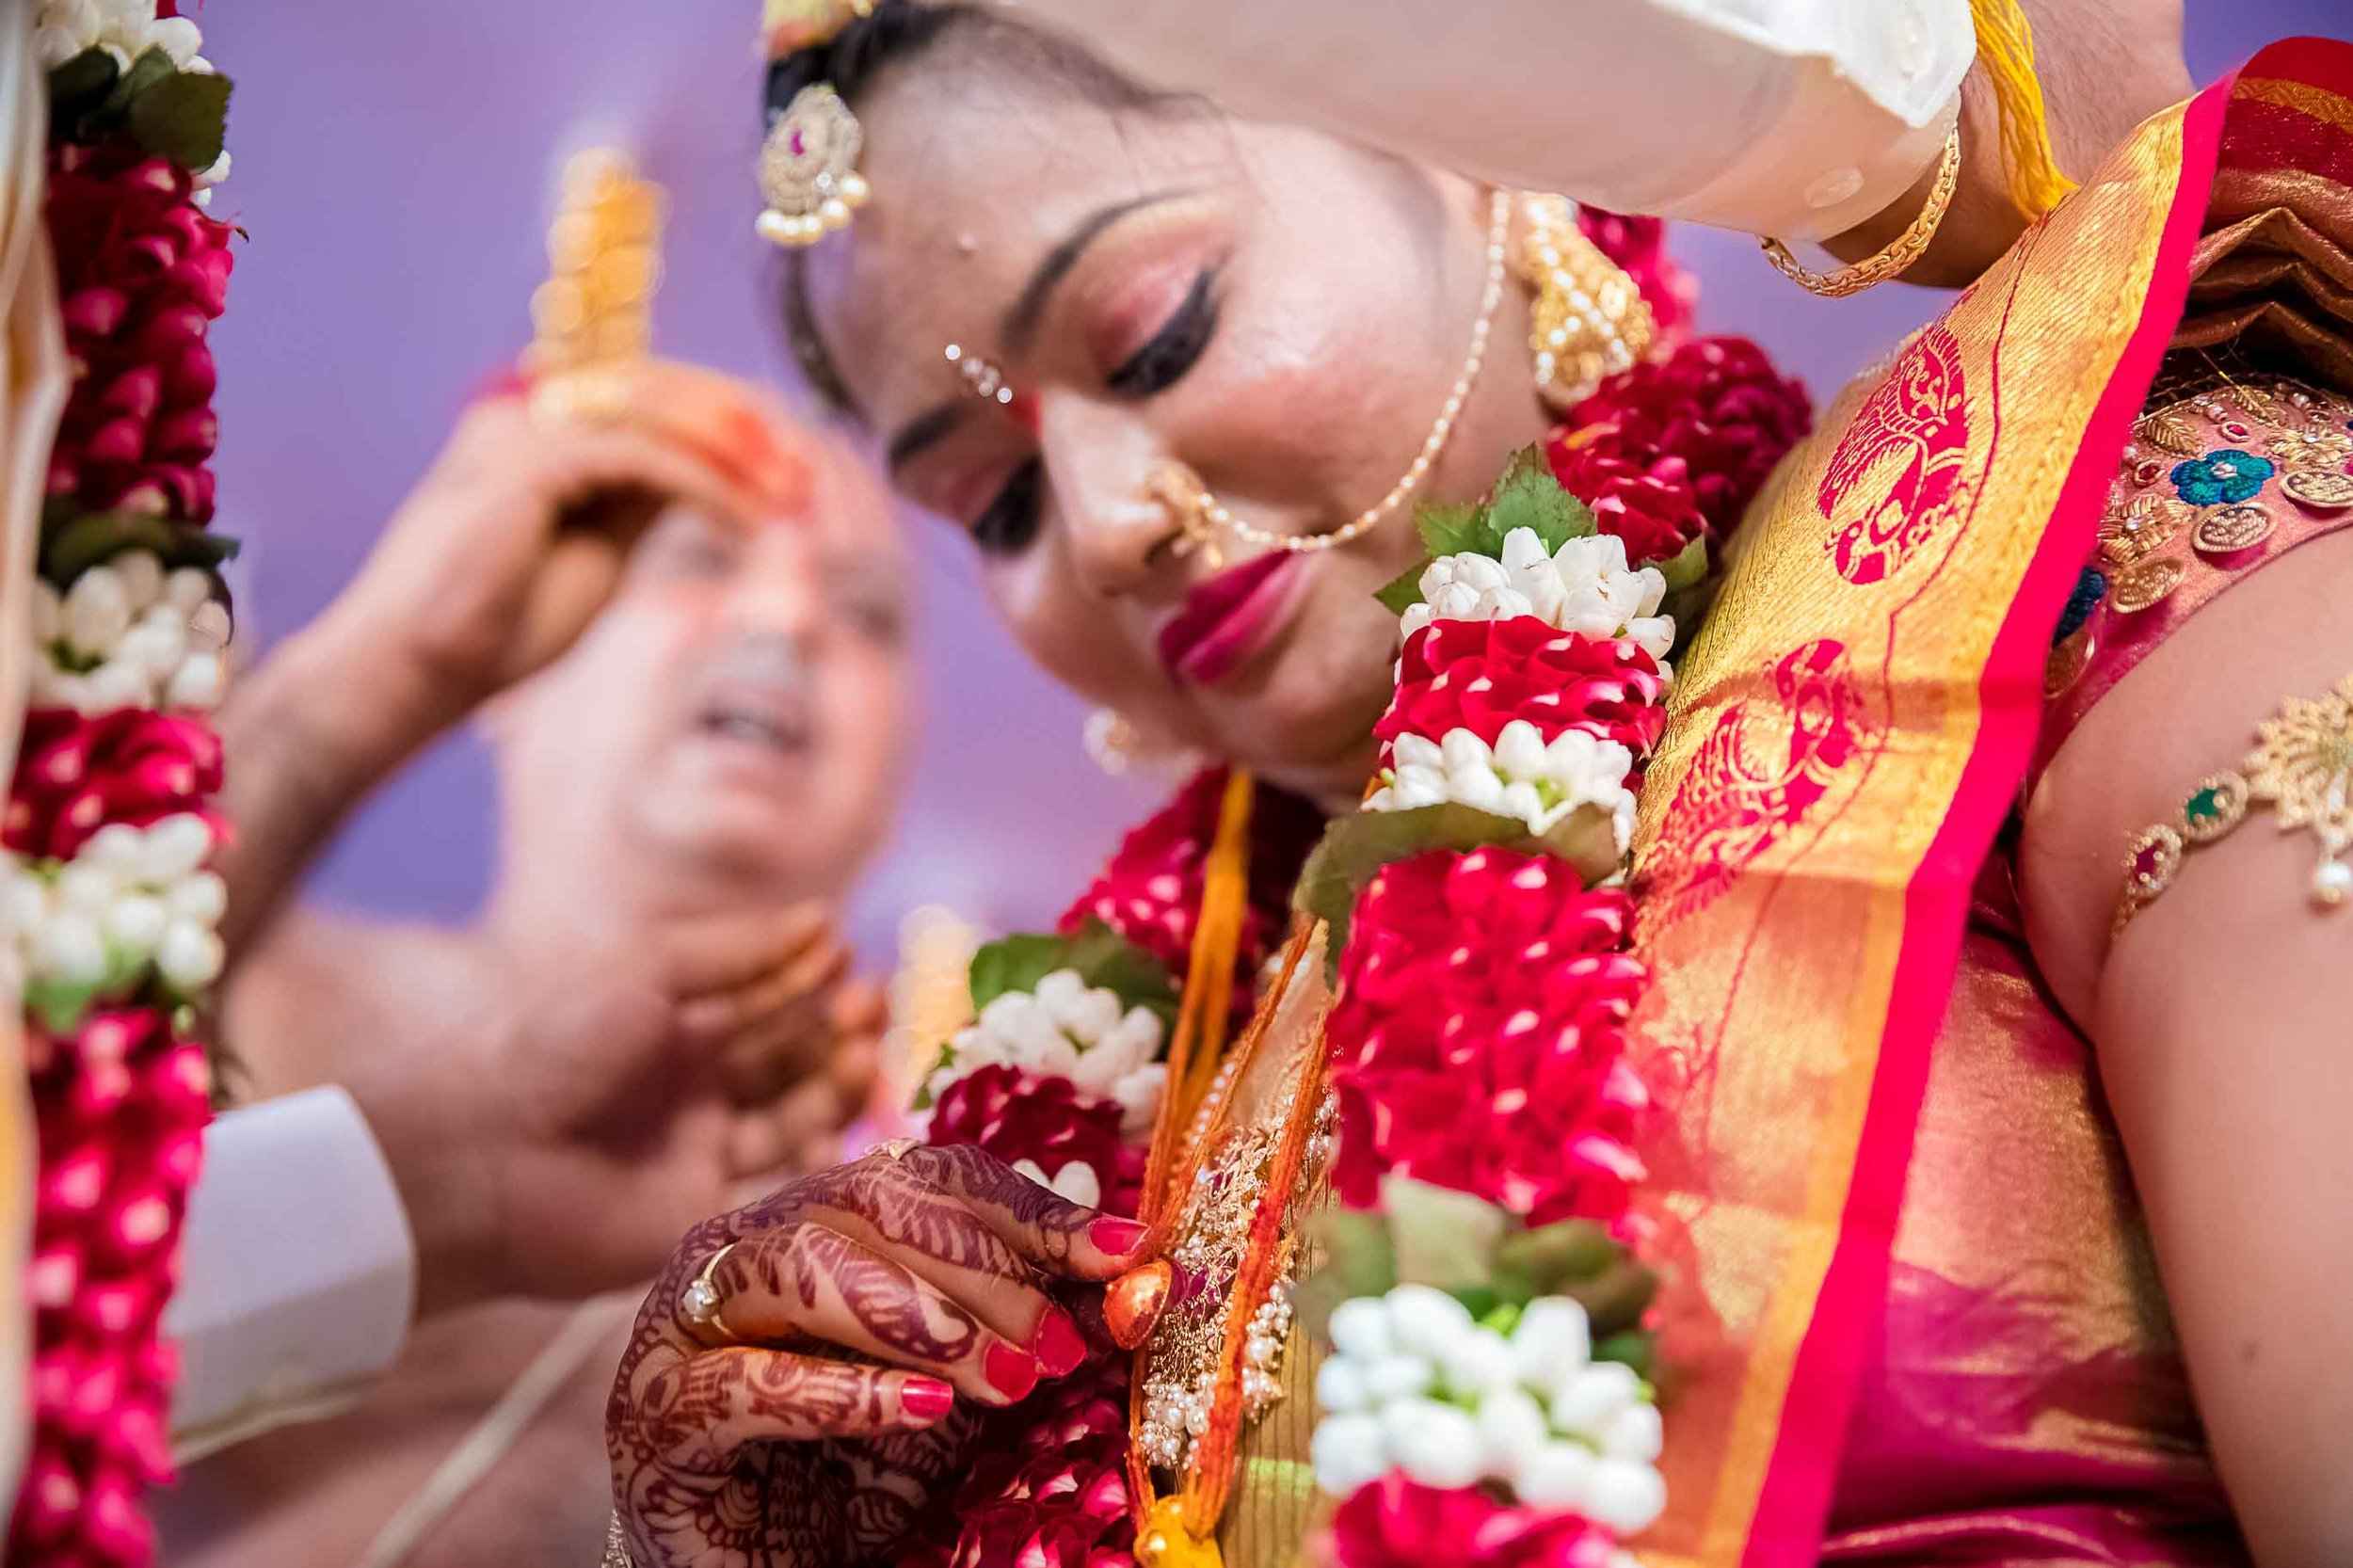 Pixel-Chronicles-Alekhya-Chaitanya-Nellore-Candid-Wedding-Mangalsutra-tying-Ceremony-13.jpg